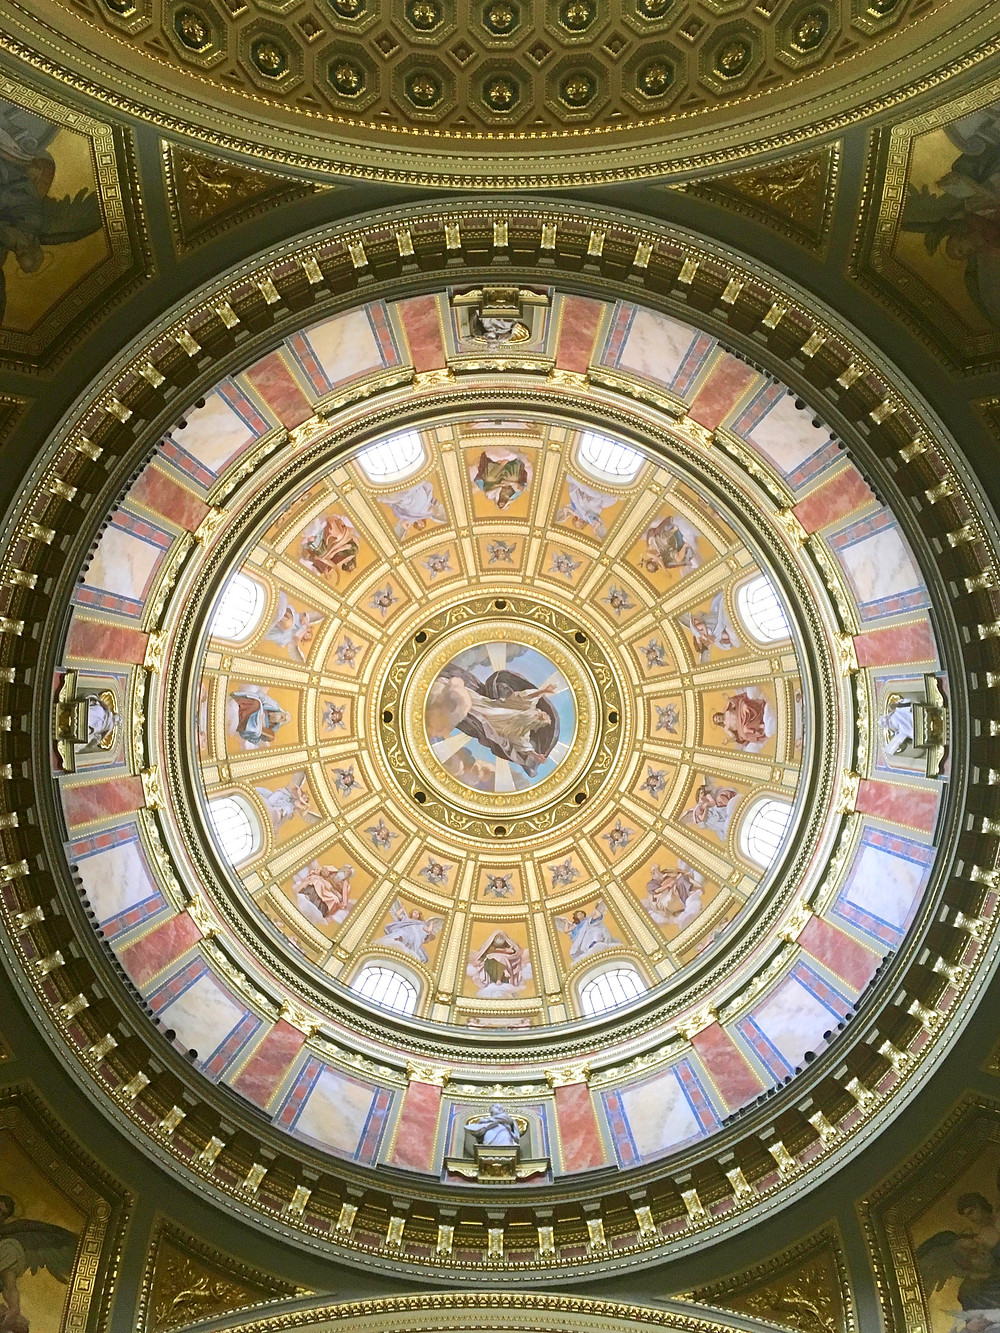 Gold images of angels and more decorating the inside of the main dome at St Stephen's Basilica, Budapest, Hungary